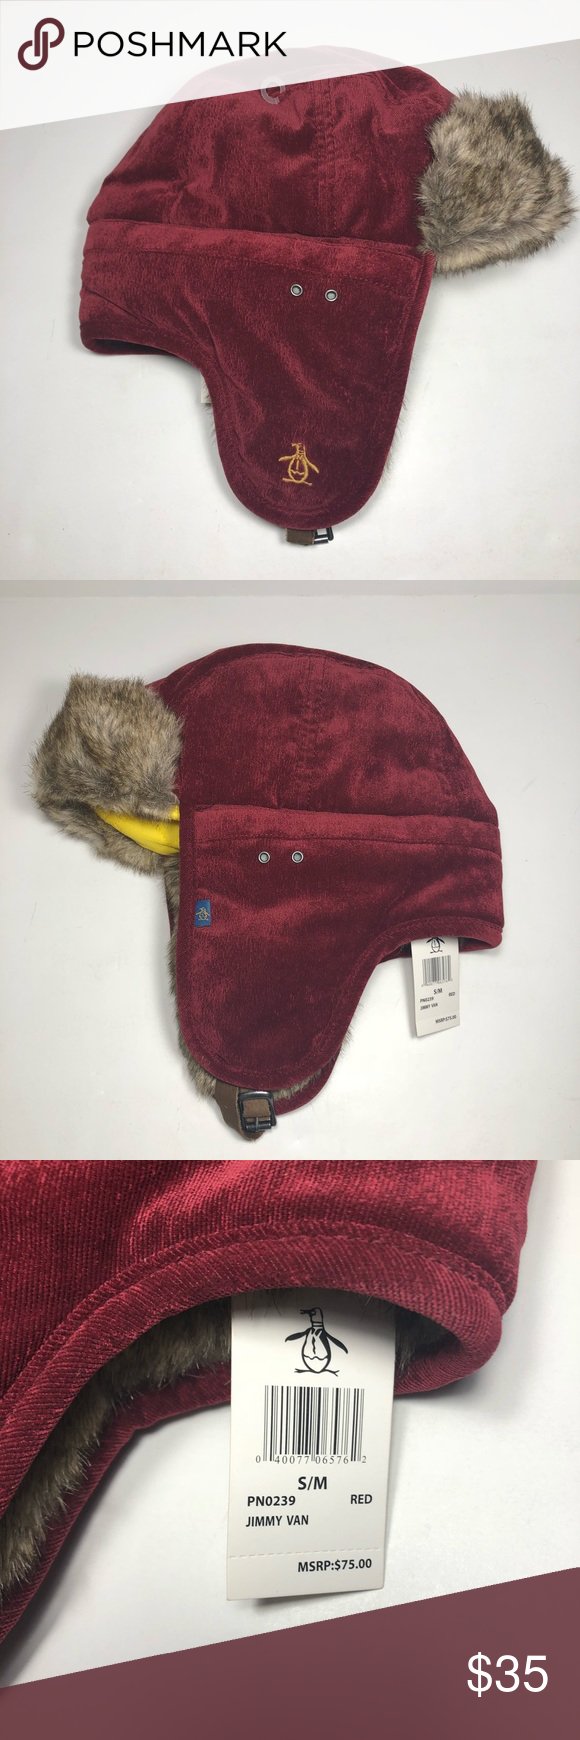 Original Penguin Red Jimmy Van Trapper Hat New With Tags See Picture For  Details. Original Penguin Accessories Hats 632a2763f02